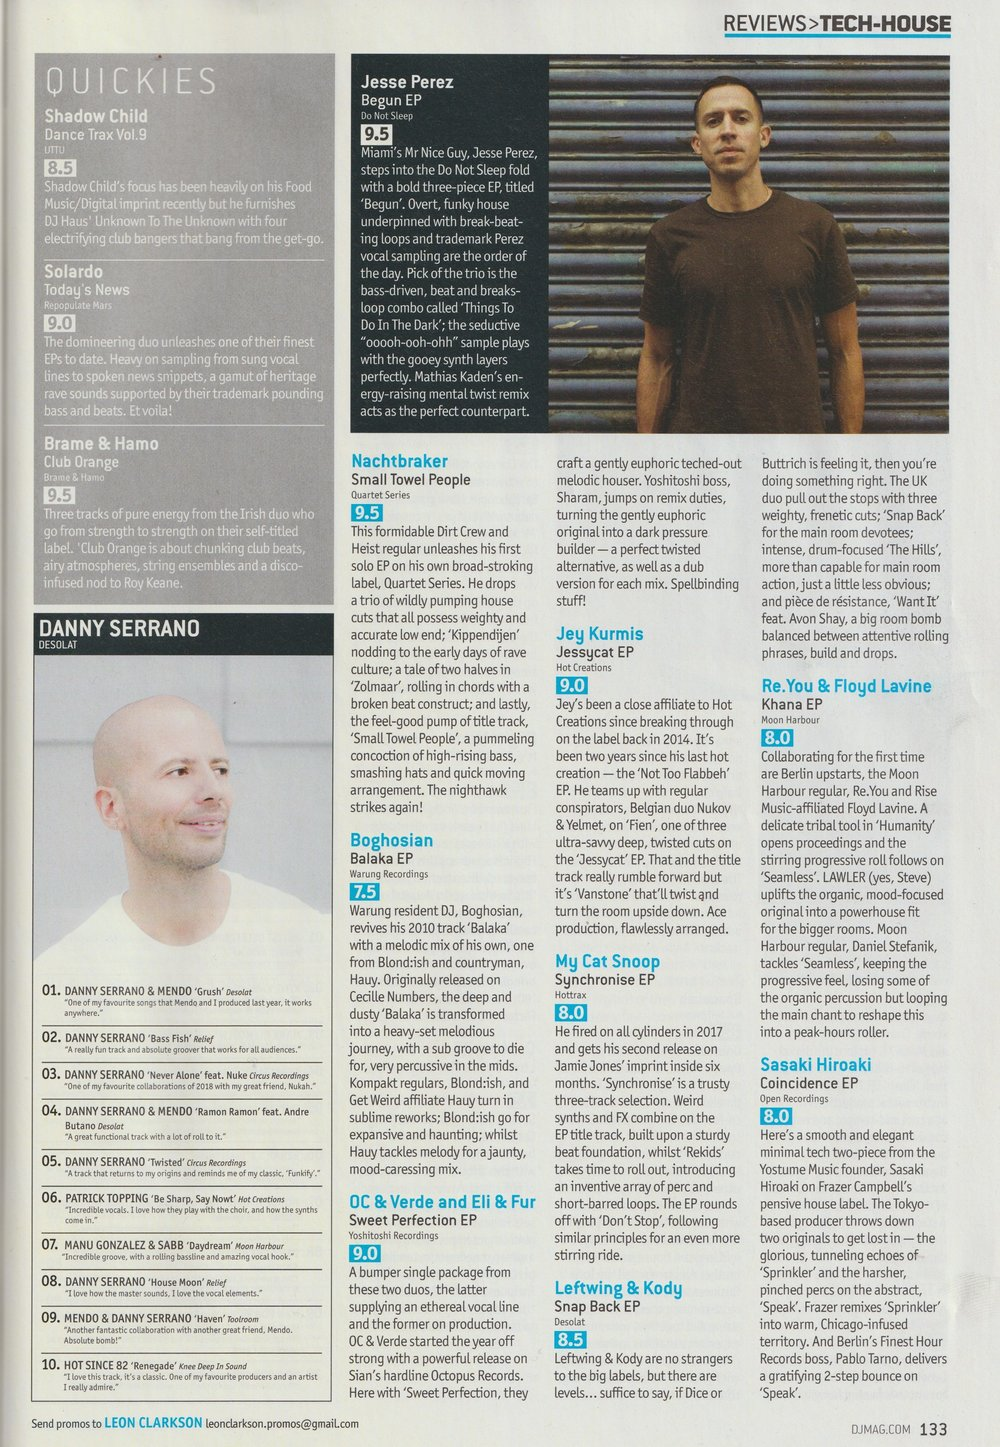 print magazine ep reviews - danny serrano top 10 chart and yoshitoshi 9/10 review on dj mag's uk tech house page